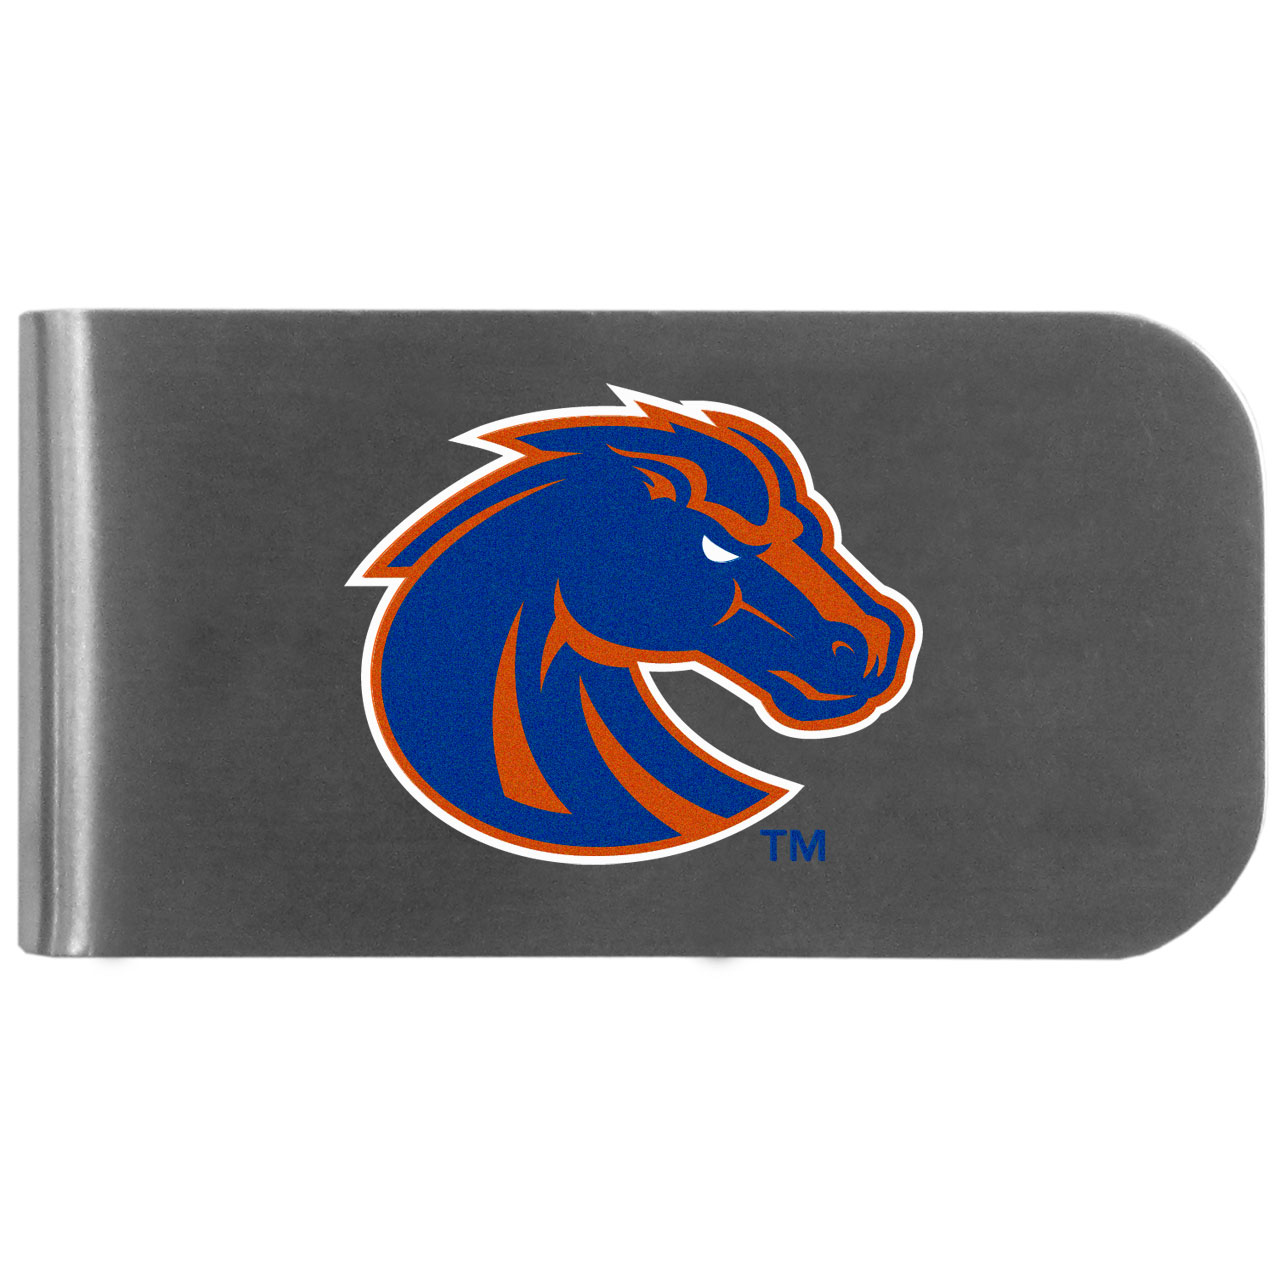 Boise St. Broncos Logo Bottle Opener Money Clip - This unique money clip features a classic, brushed-metal finish with a handy bottle opener feature on the back. The clip has the Boise St. Broncos logo expertly printed on the front of the clip.